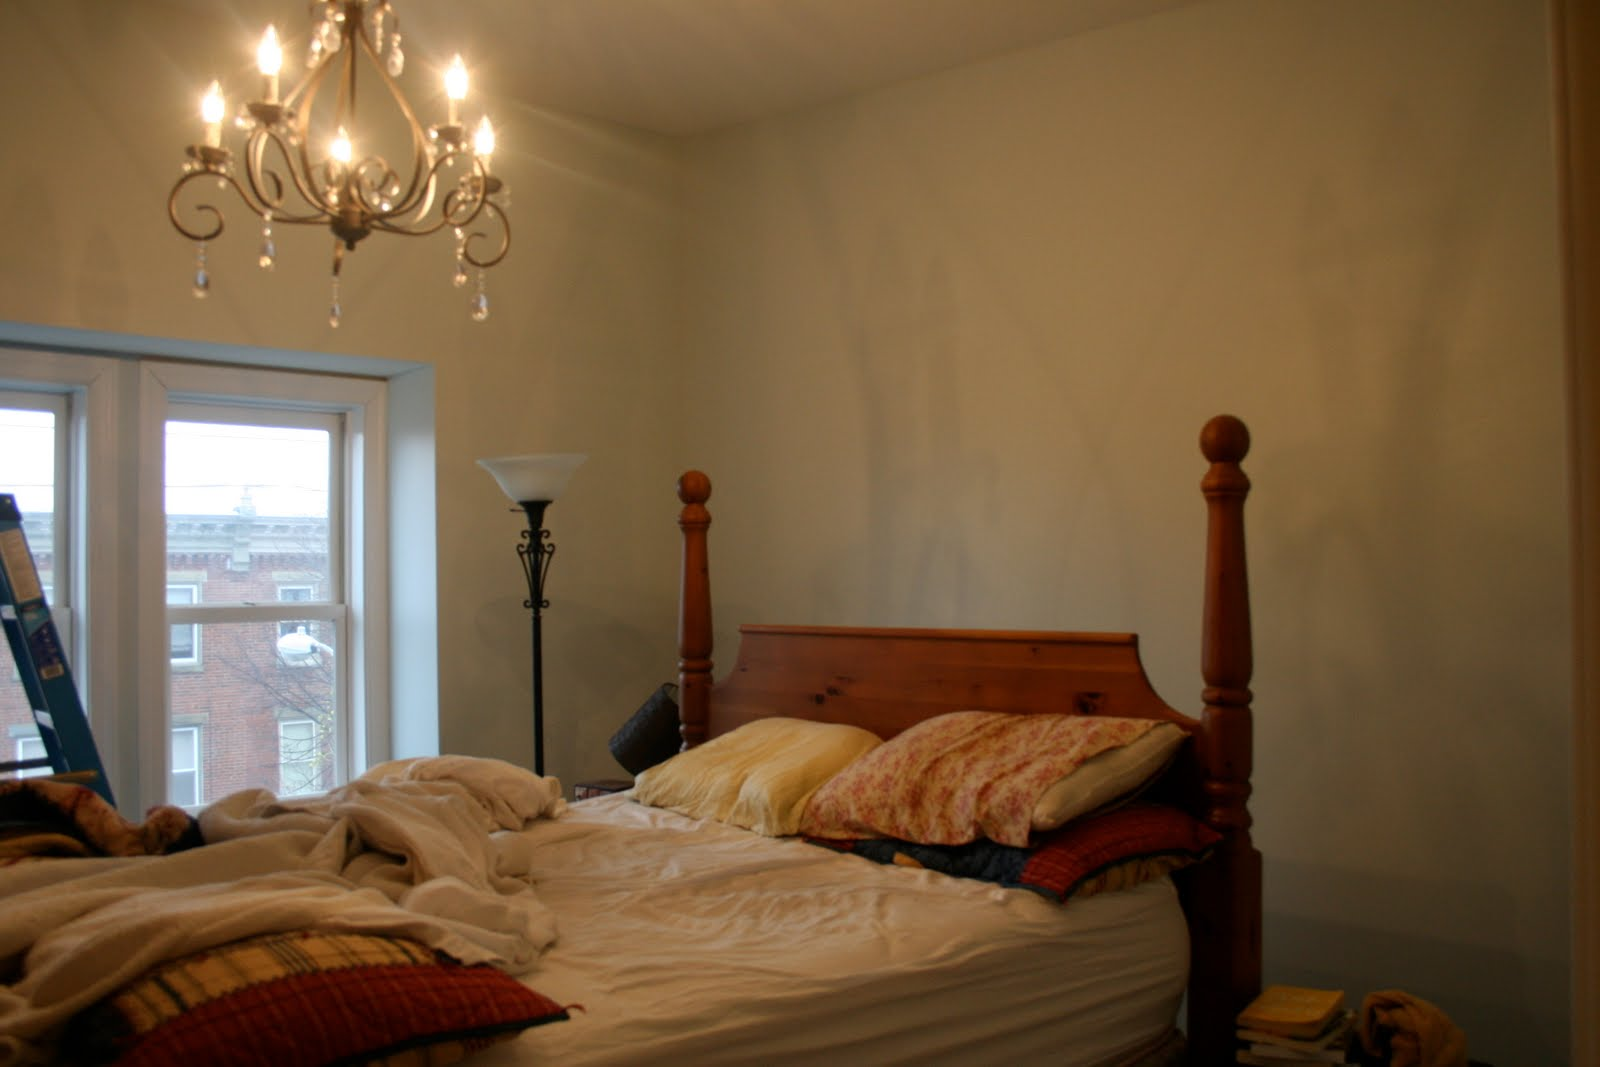 Painting My Bedroom The Lazy Perfectionists Guide To Painting Walls And A Winner